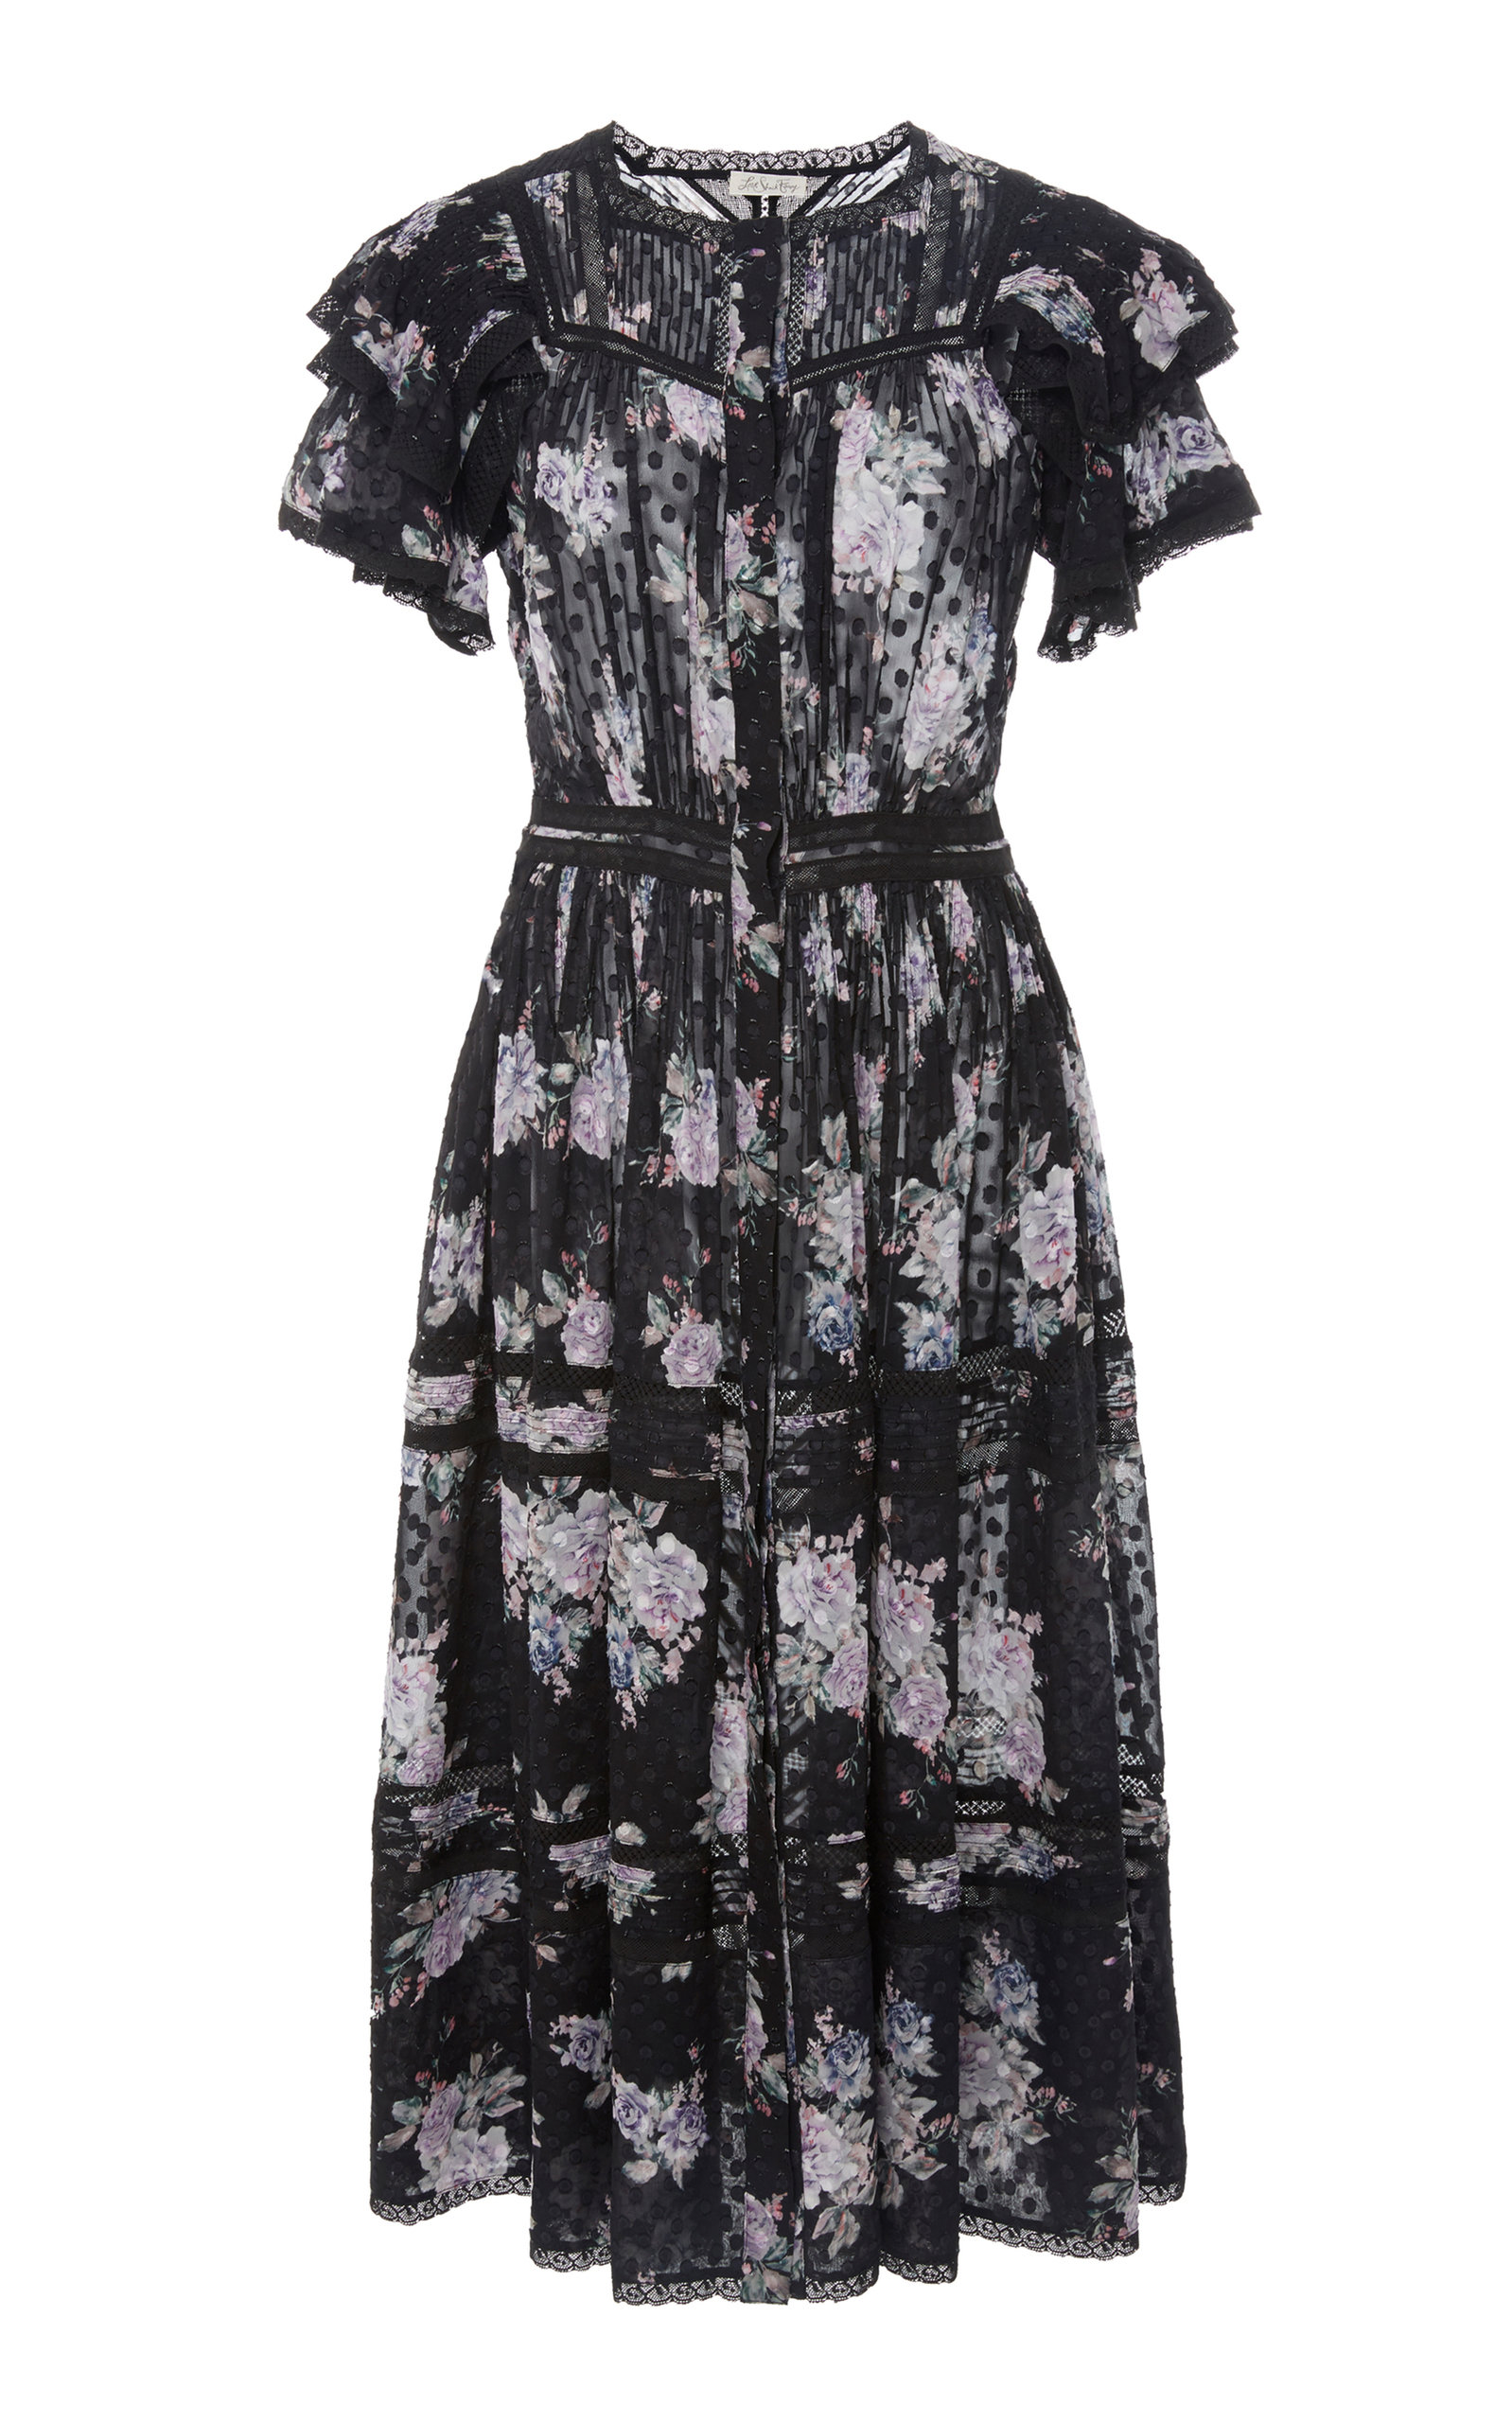 LOVESHACKFANCY Claribel Floral Silk Lace Midi Dress in Black